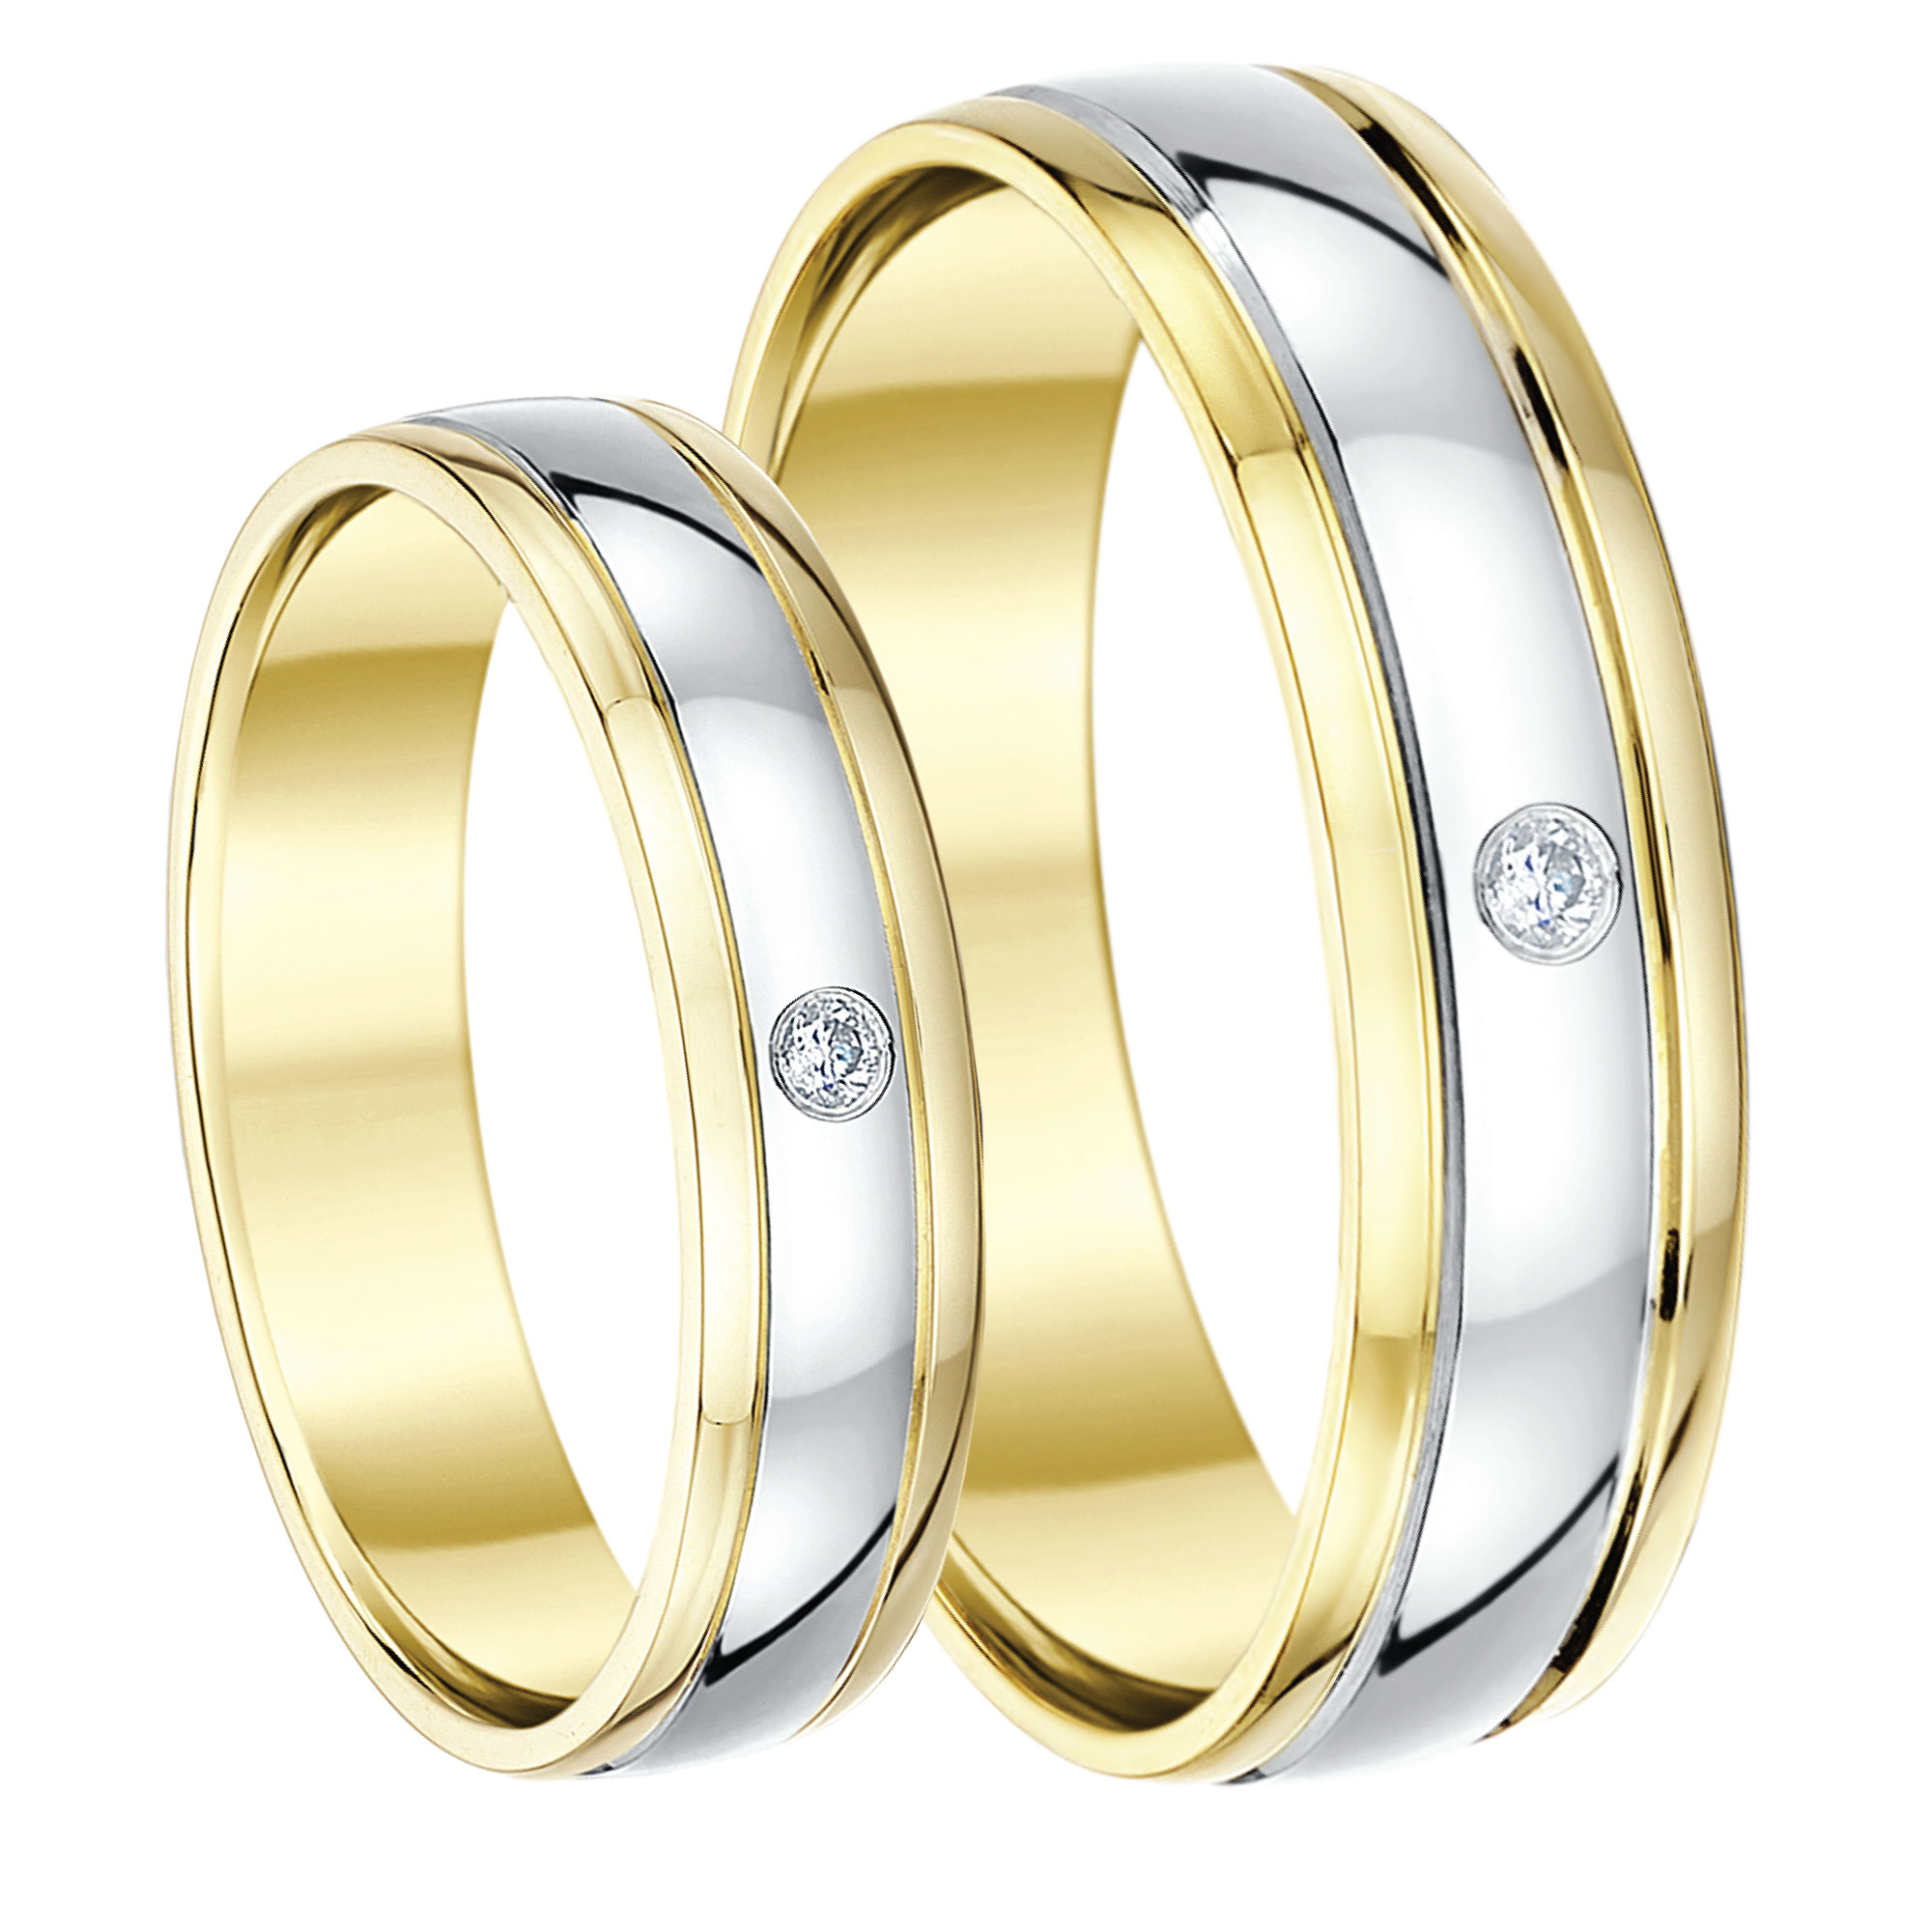 wedding round men steel gift jewelry style rings gold classic stainless women color luxusteel for ring products size